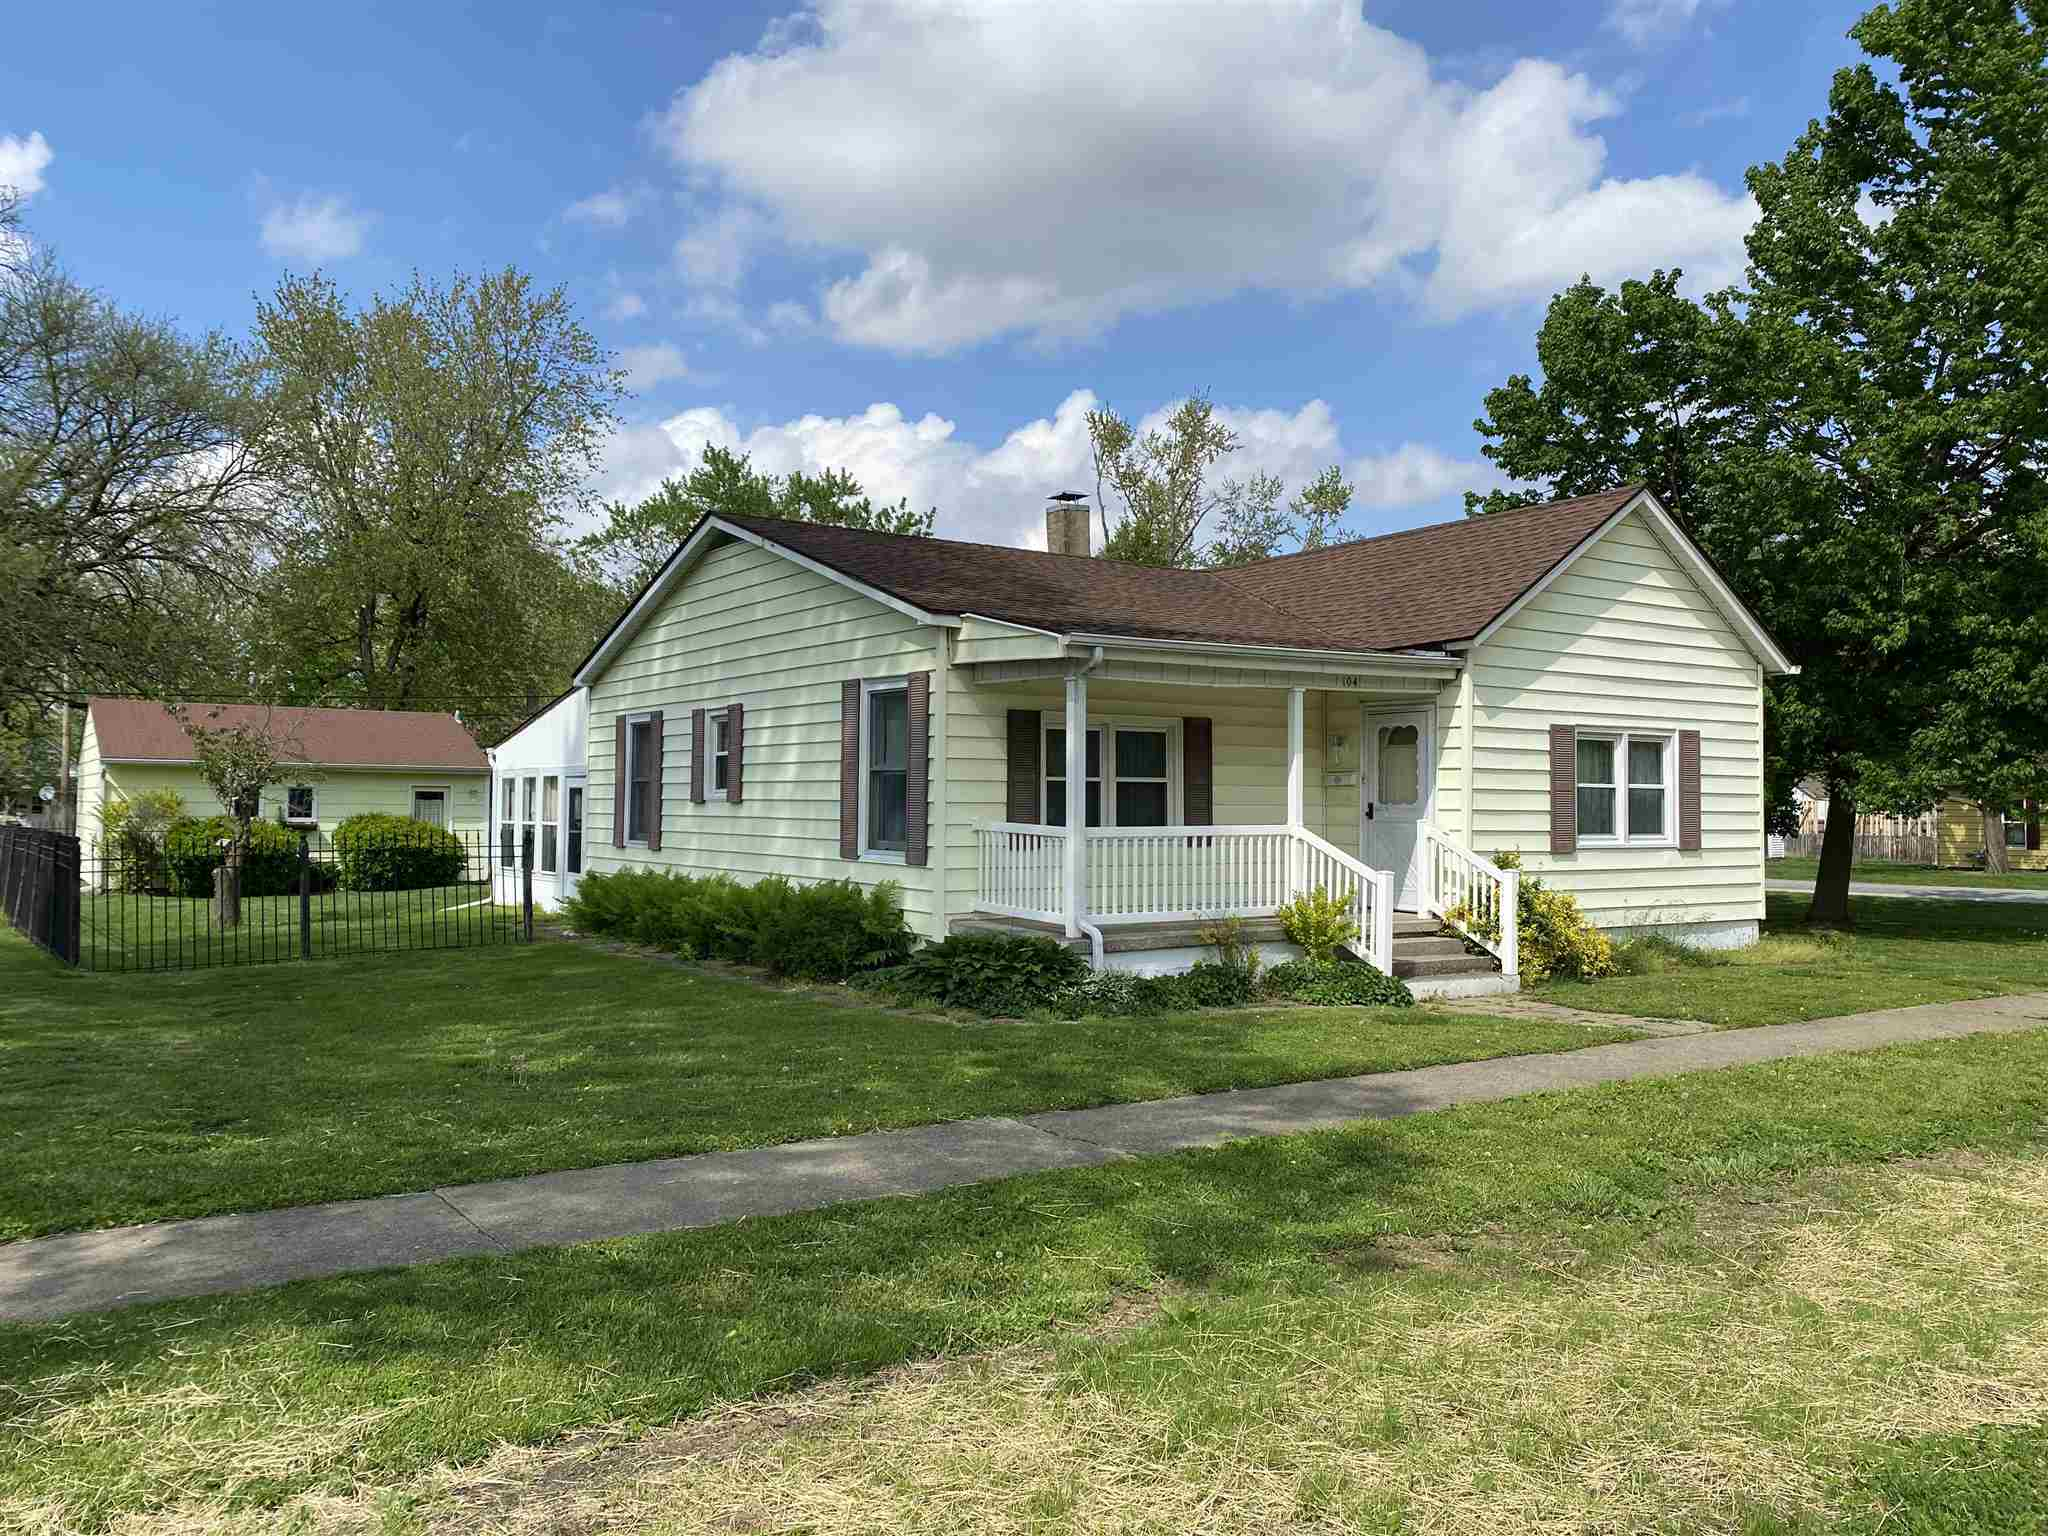 104 W MADISON Property Photo - Auburn, IL real estate listing